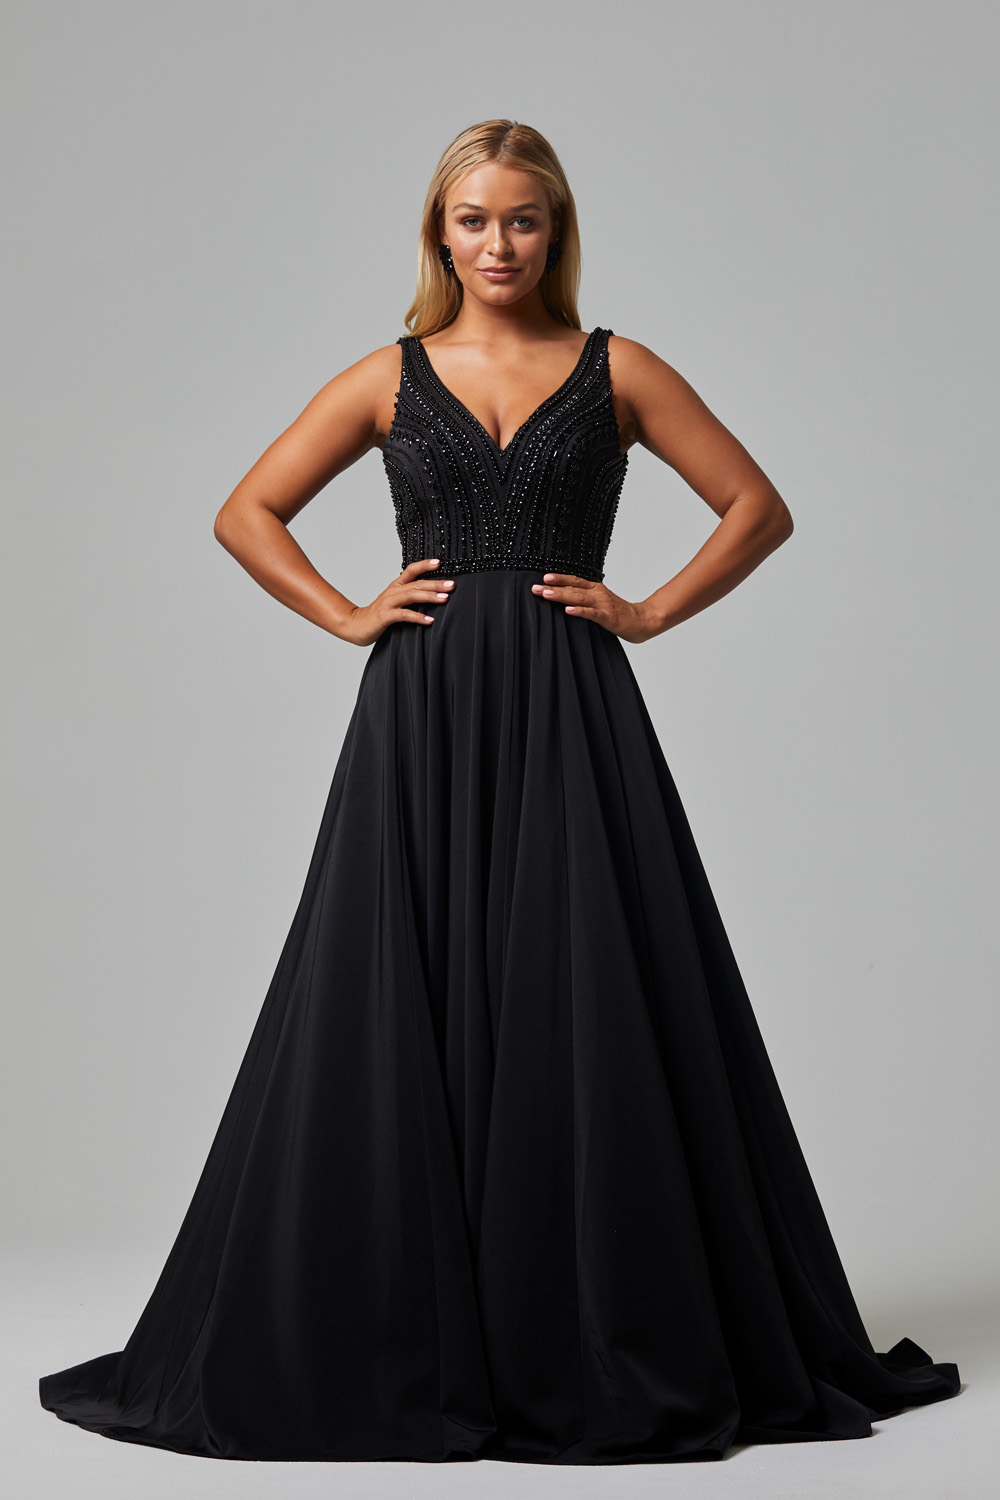 Addilyn V neck beaded evening dress